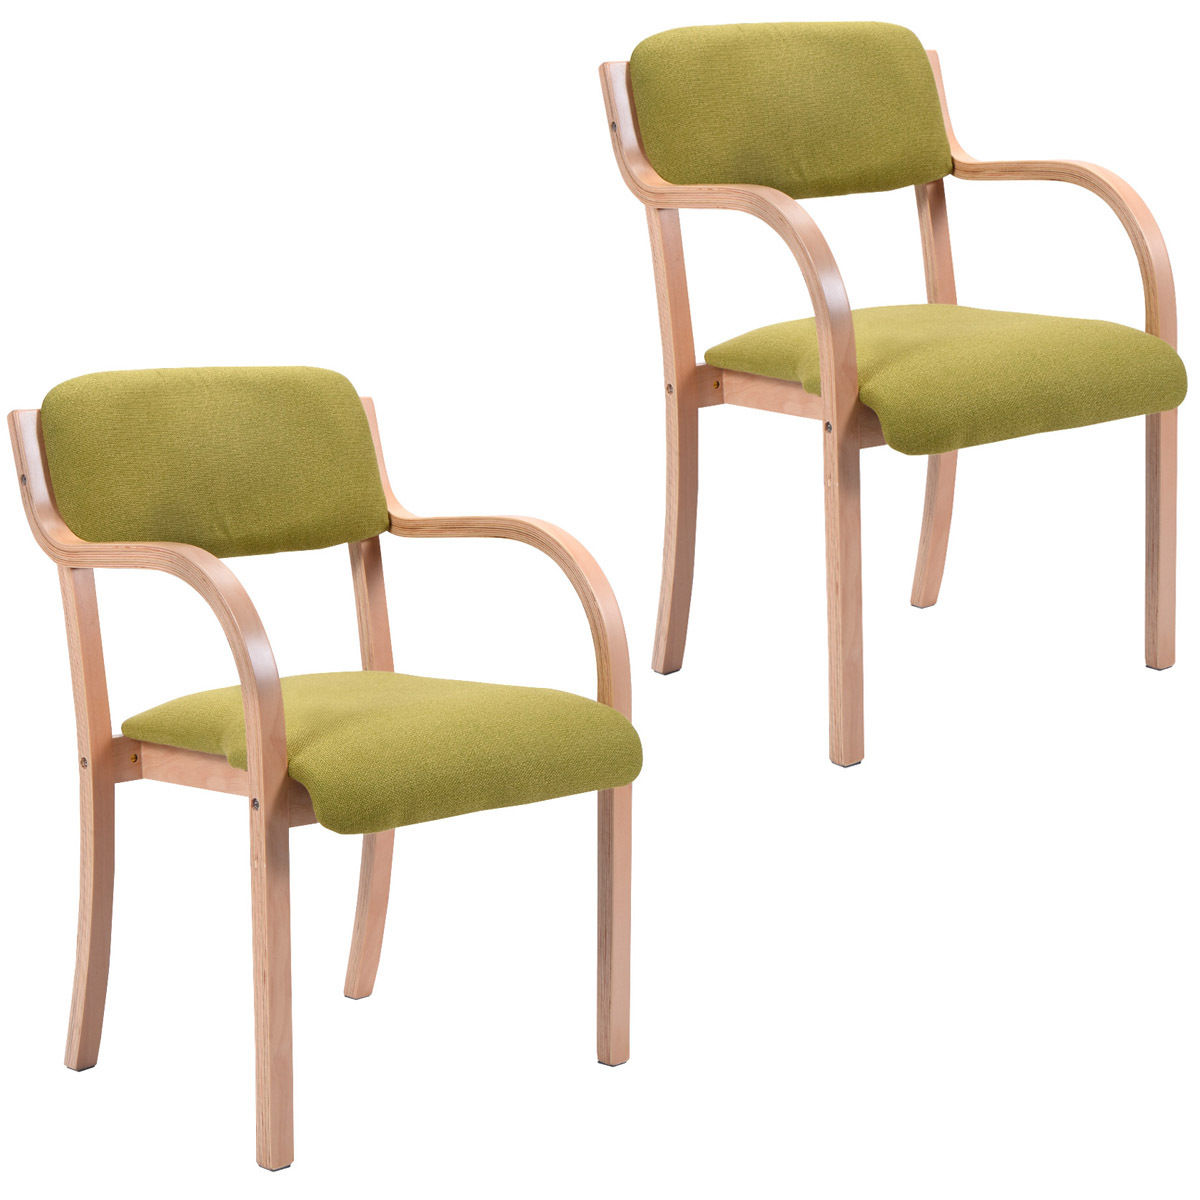 Giantex Set of 2 Bentwood Arm Dining Chairs Modern Green Accent Chair Upholstered Home Room Furniture 2*HW52978GR mid century presidential solid oak wood dining chair armchair upholstery seat dining room furniture modern arm chair for home